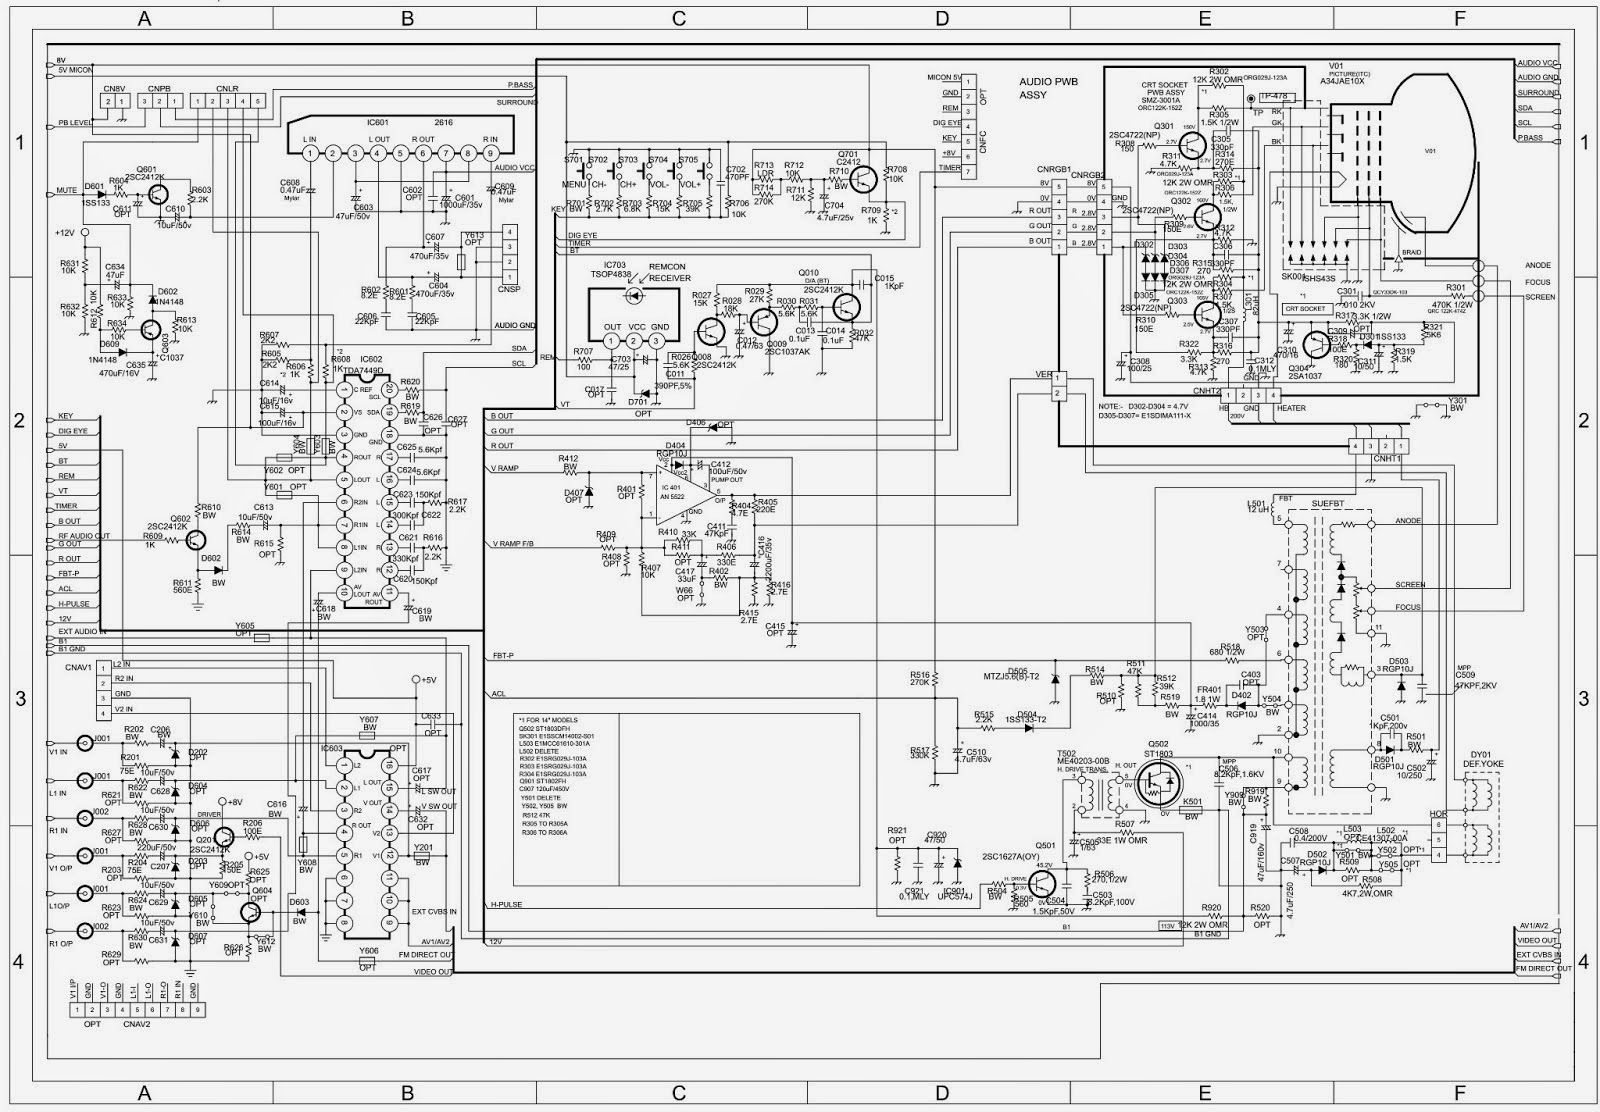 Tv Schematic Diagrams Circuits Car Wiring Explained Electronics Repair Made Easy Chanwong Tvchina See Circuit Below Image Result For Samsung Diagram Projects To Try Rh Pinterest Com Block